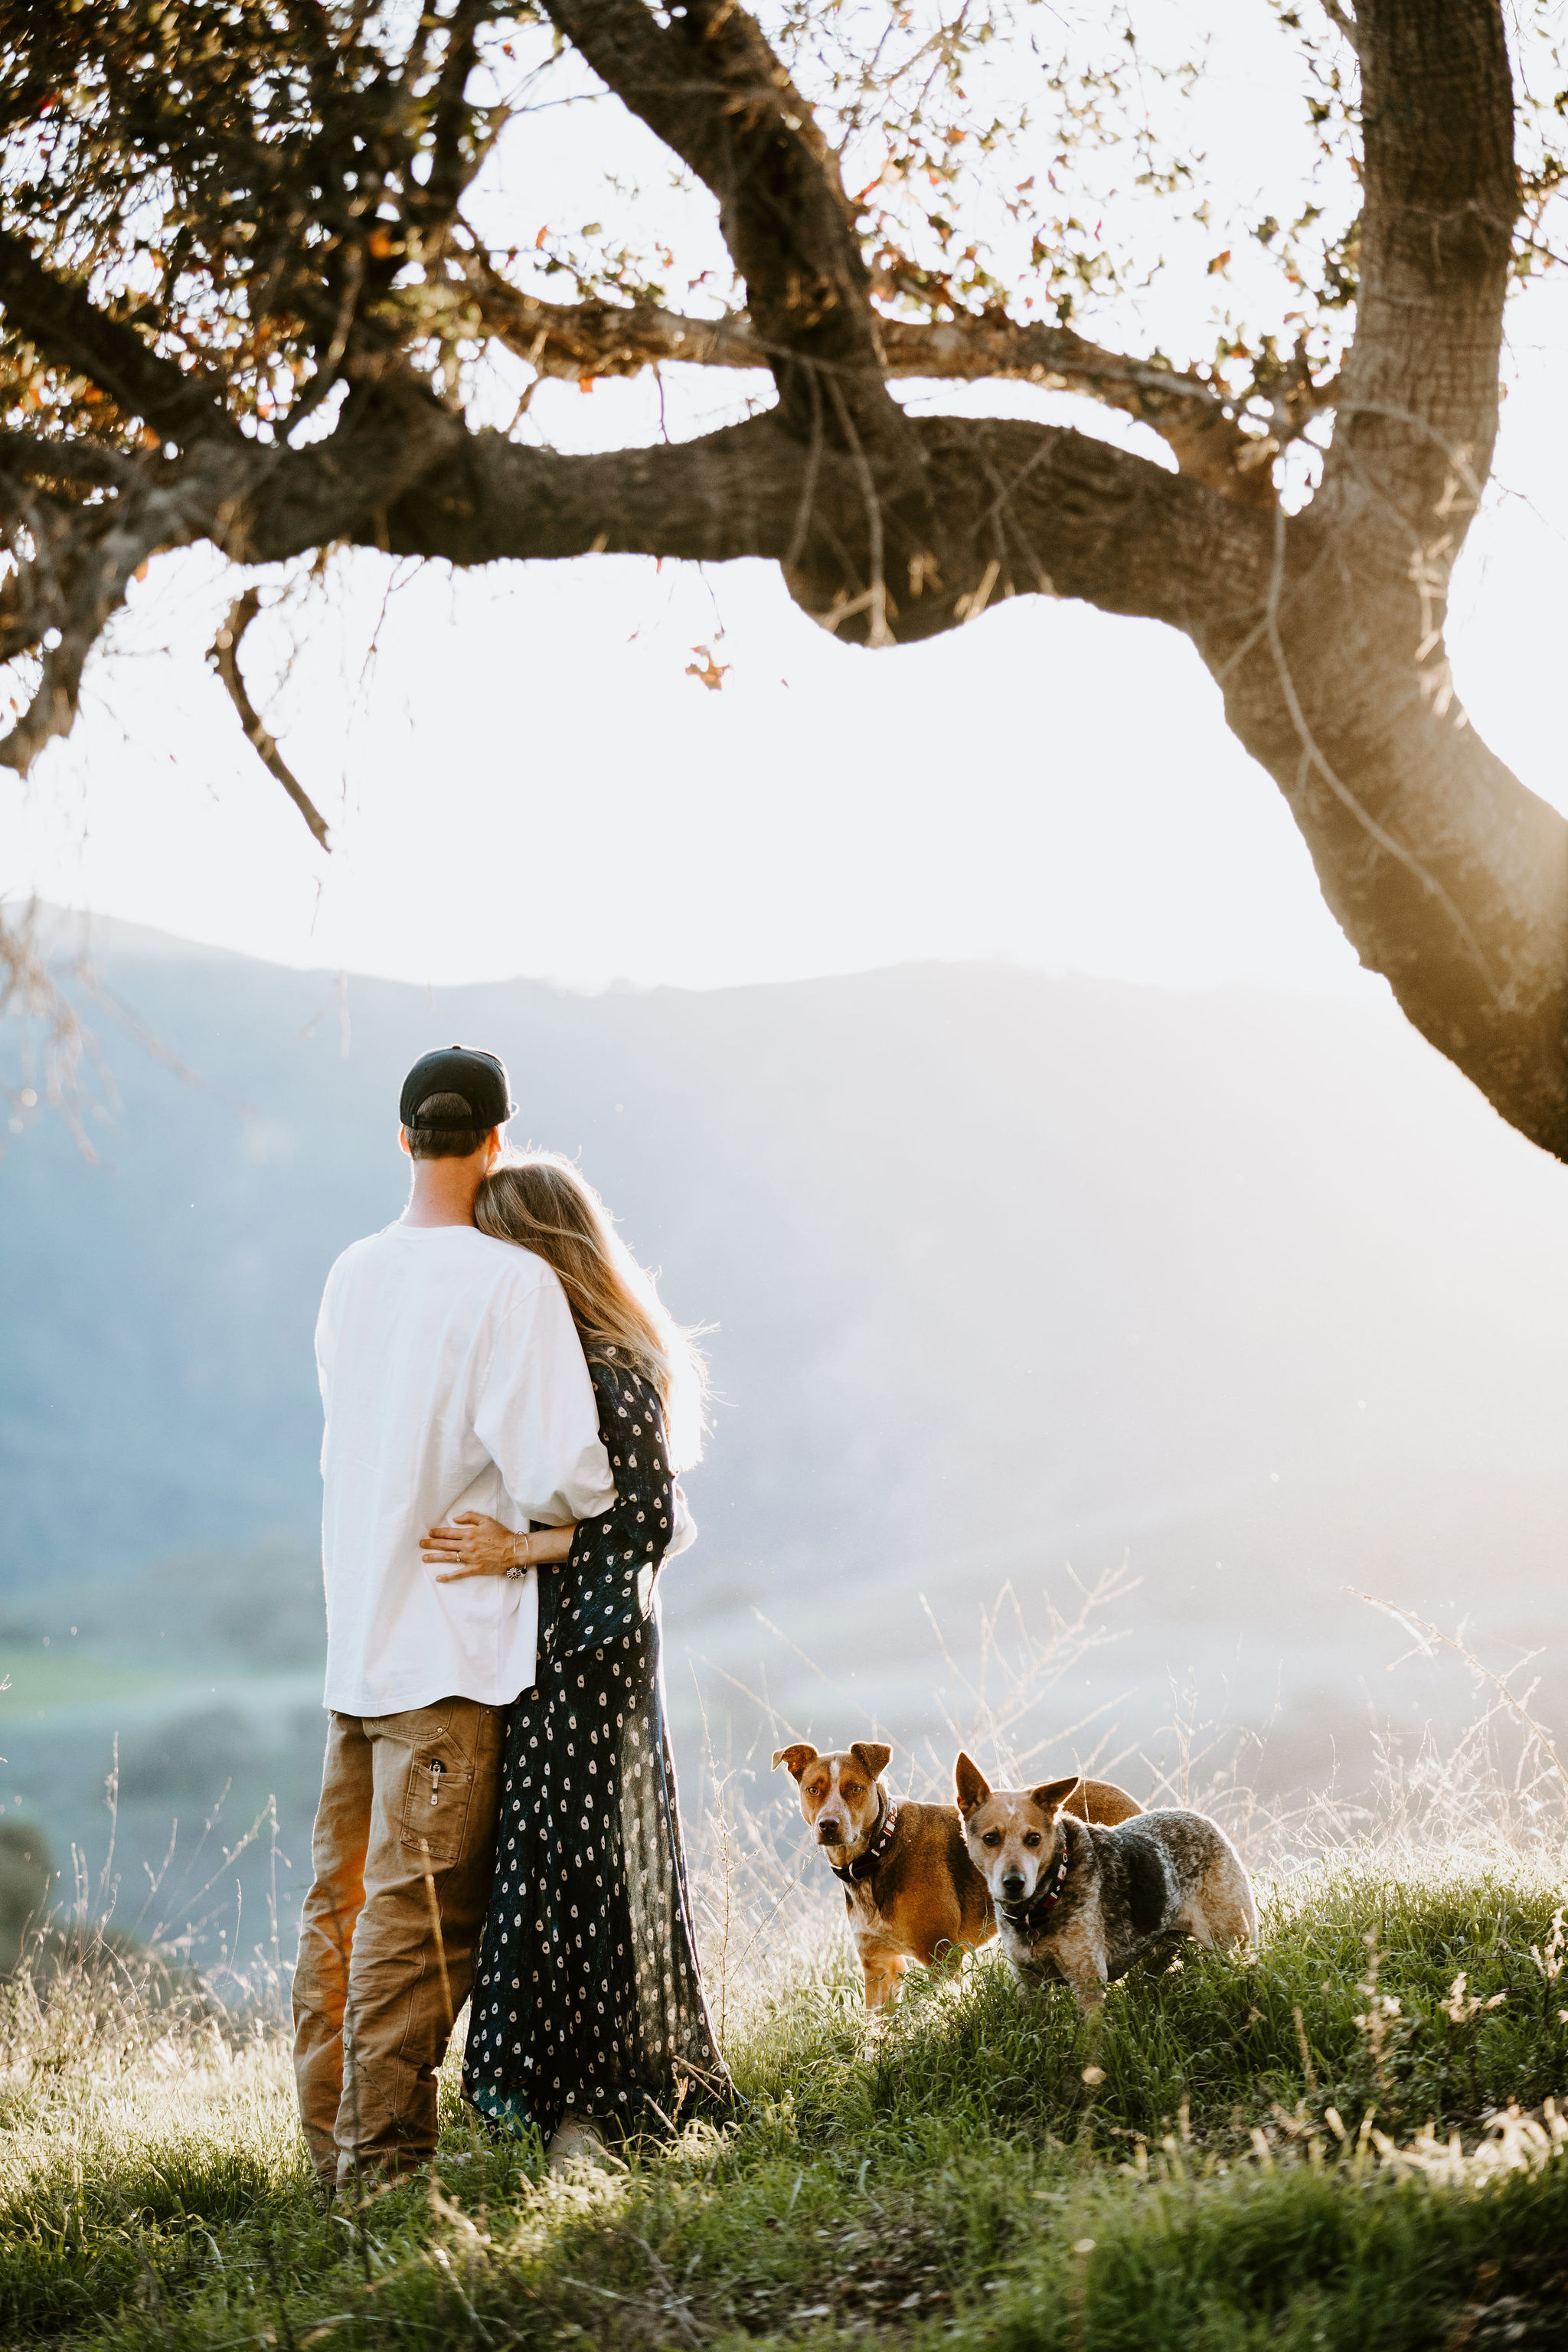 OjaiEngagementSession_Geoff&LyndsiPhotography_Eveline&Scotty79.jpg